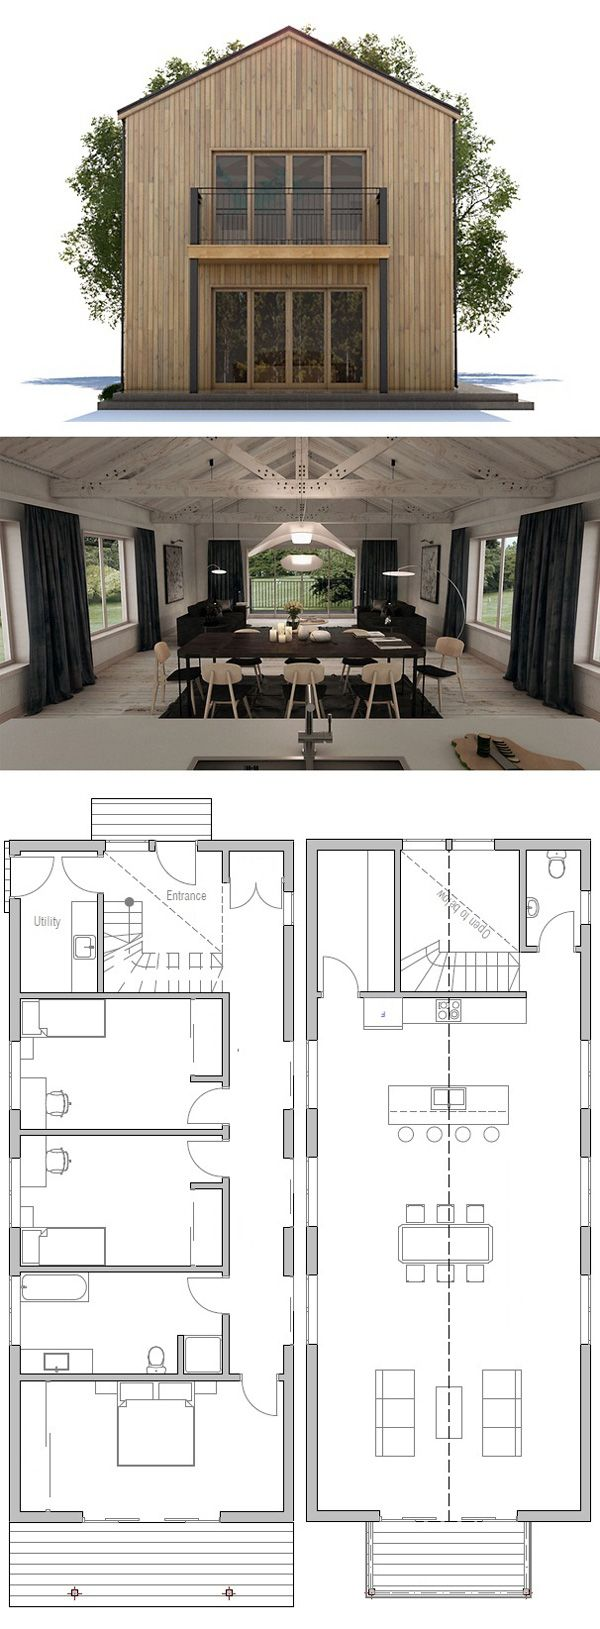 Small house plan small house plans pinterest small house plans and smallest house